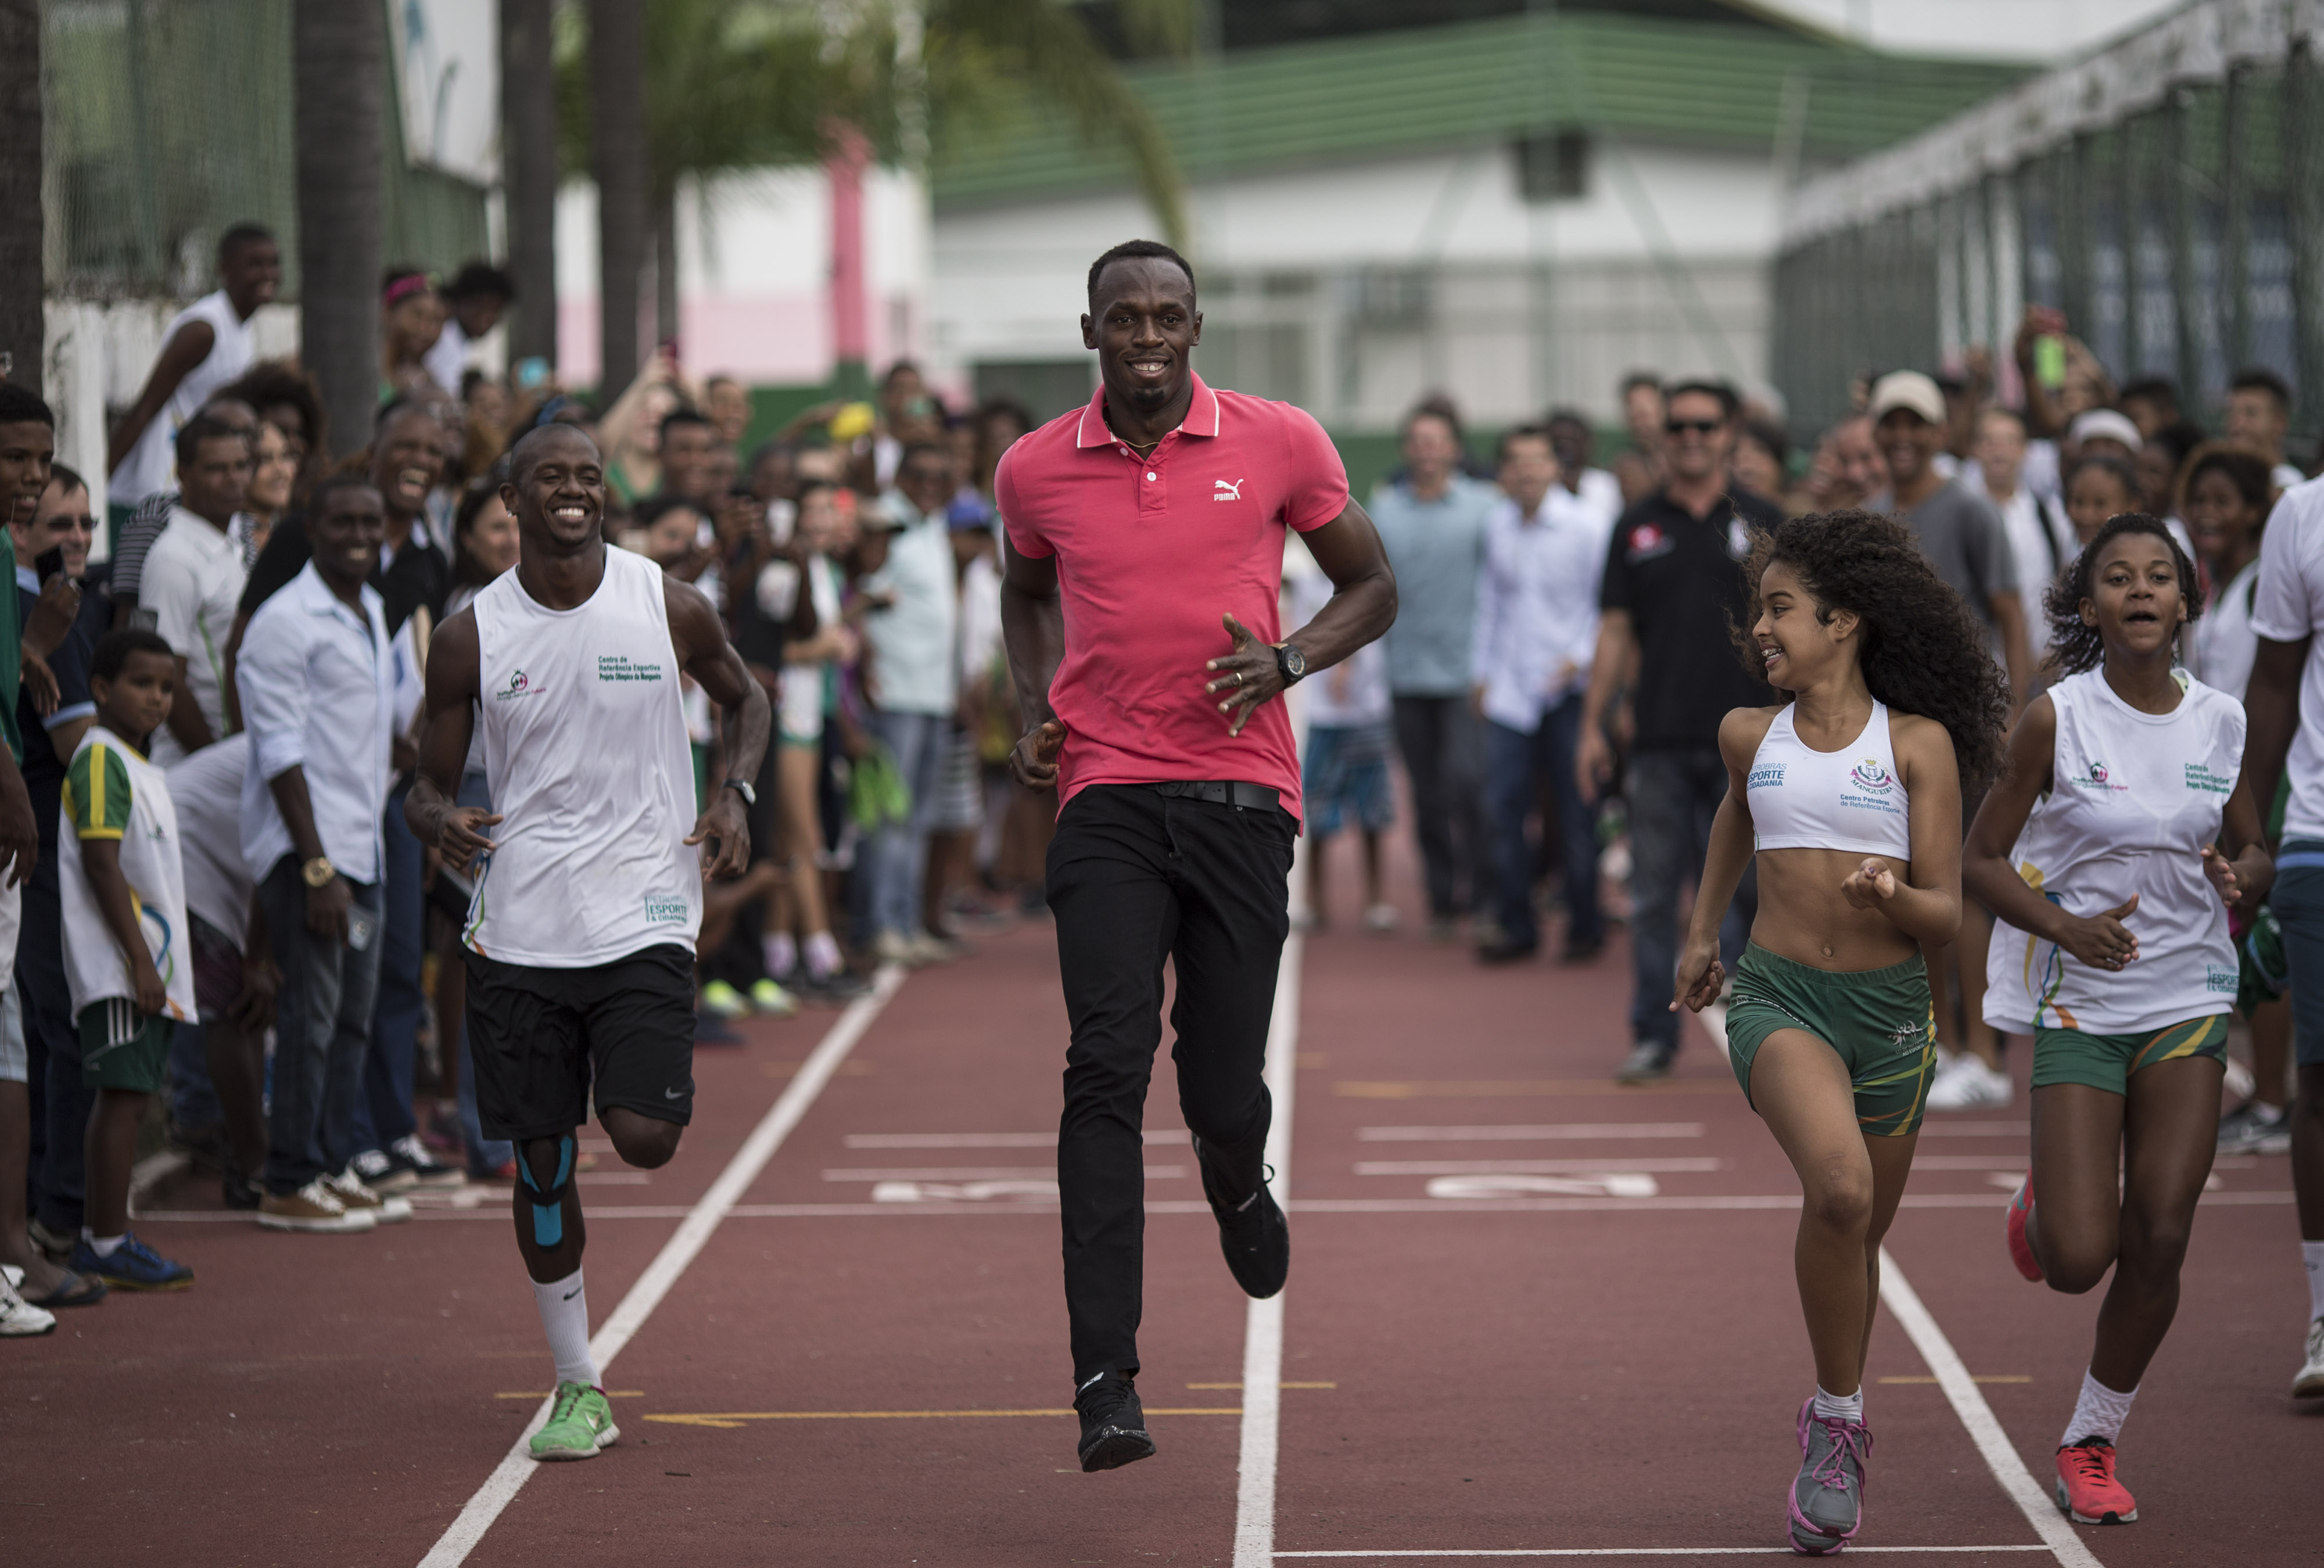 Jamaican Olympic gold medalist Usain Bolt, center, playfully races with youths during a visit to a social sport program at Mangueira slum in Rio de Janeiro, Brazil, Thursday, April 16, 2015. (AP Photo/Felipe Dana)